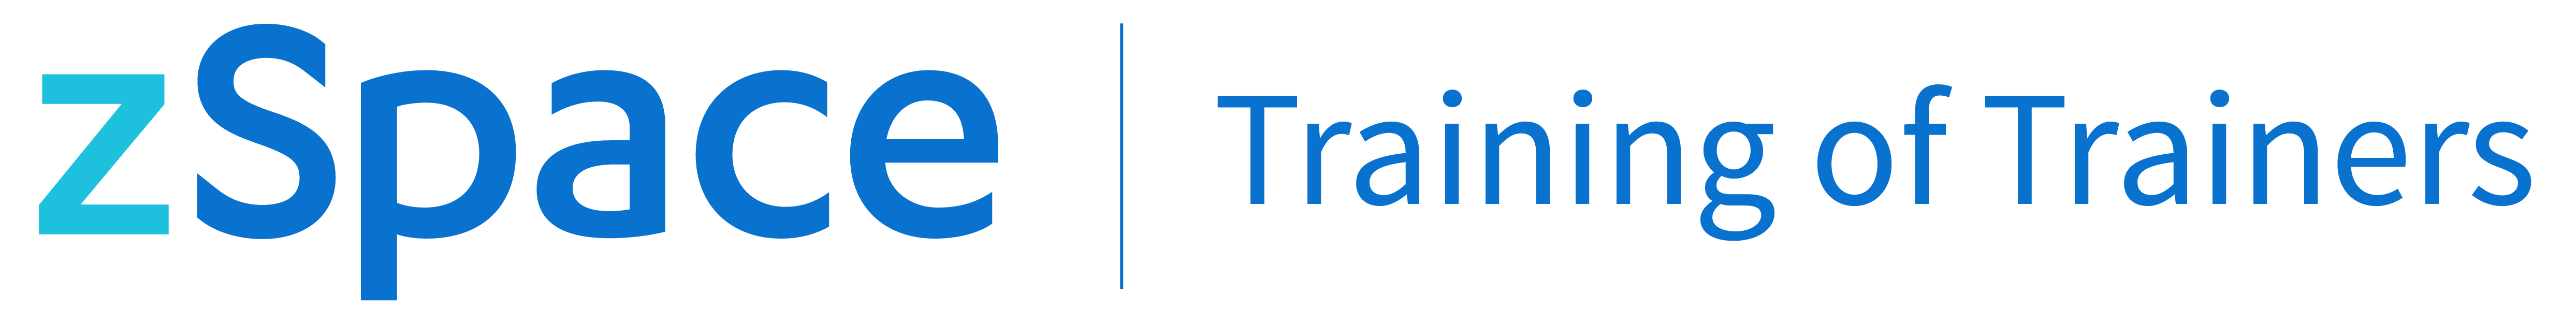 zSpace Training of Trainers Logo (Large - 2x)